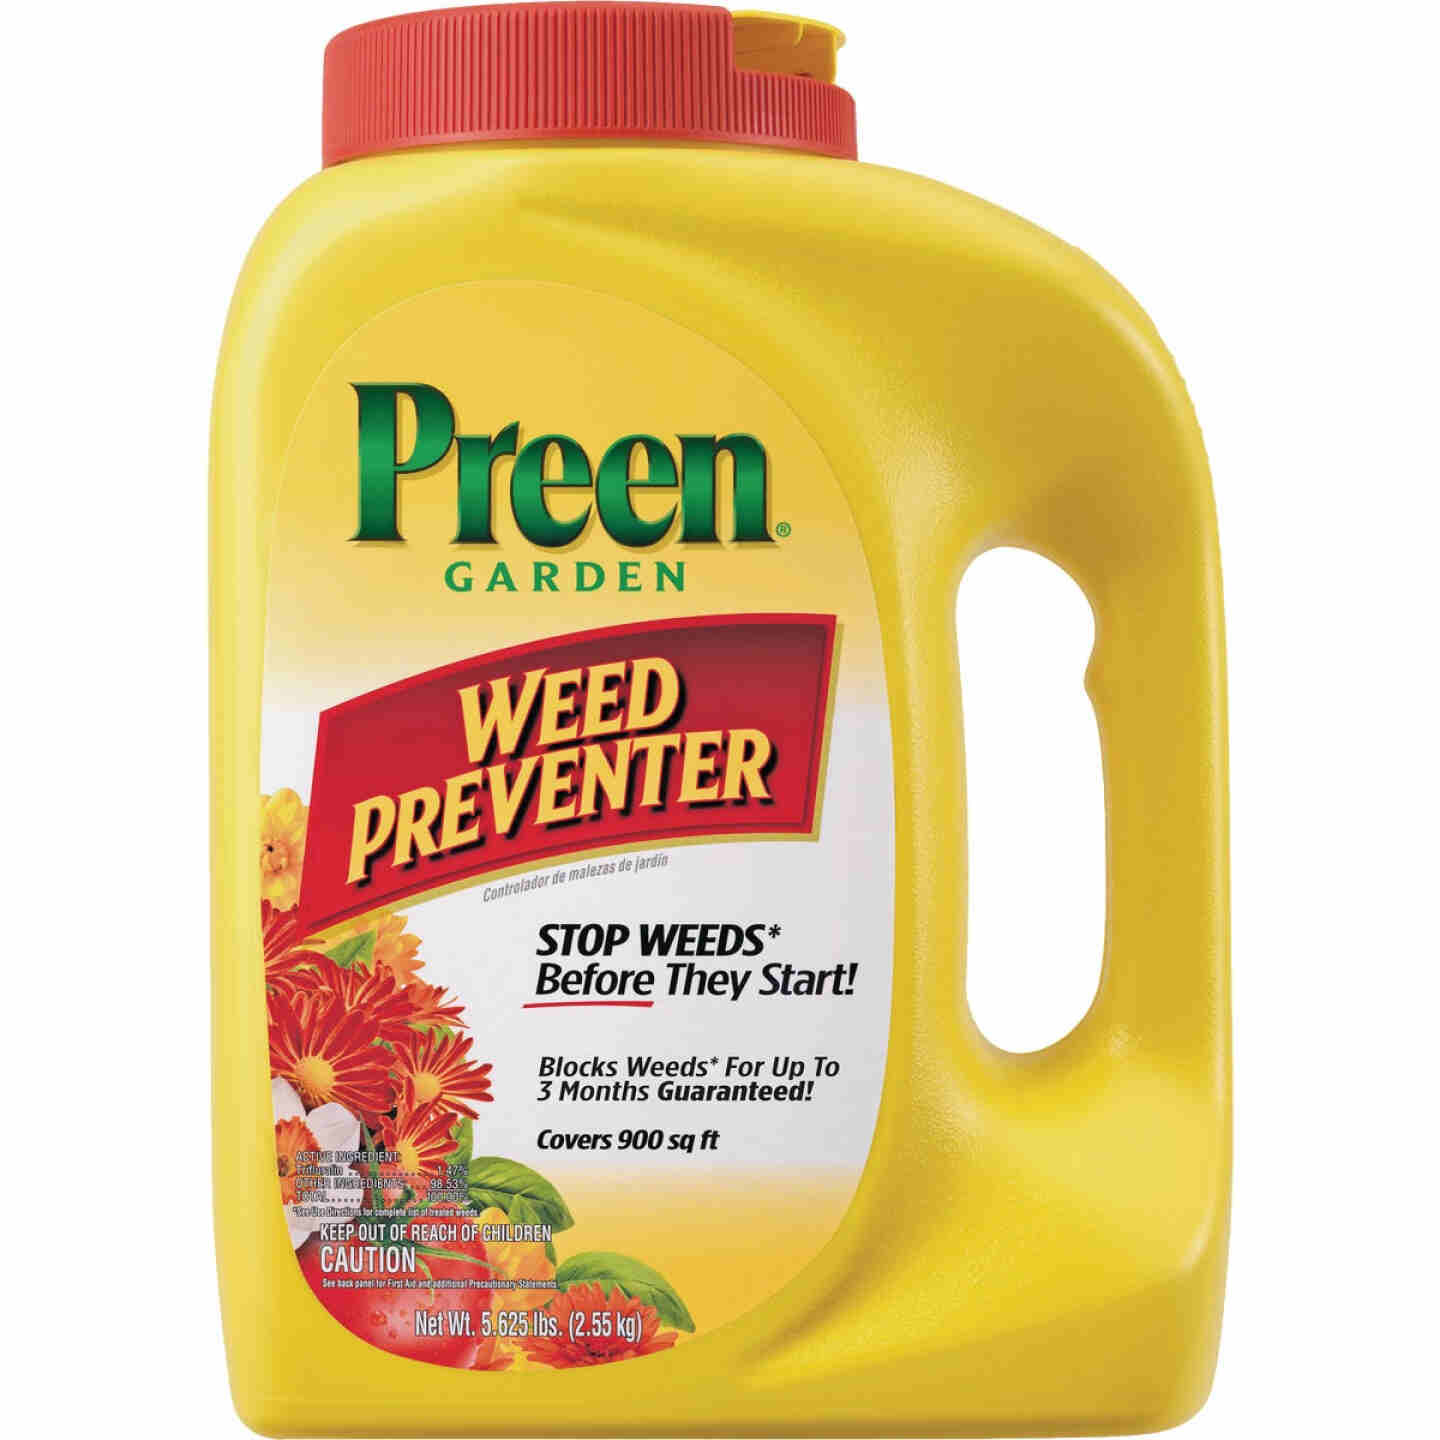 Preen 5.625 Lb. Ready To Use Granules Garden Weed Preventer Image 1